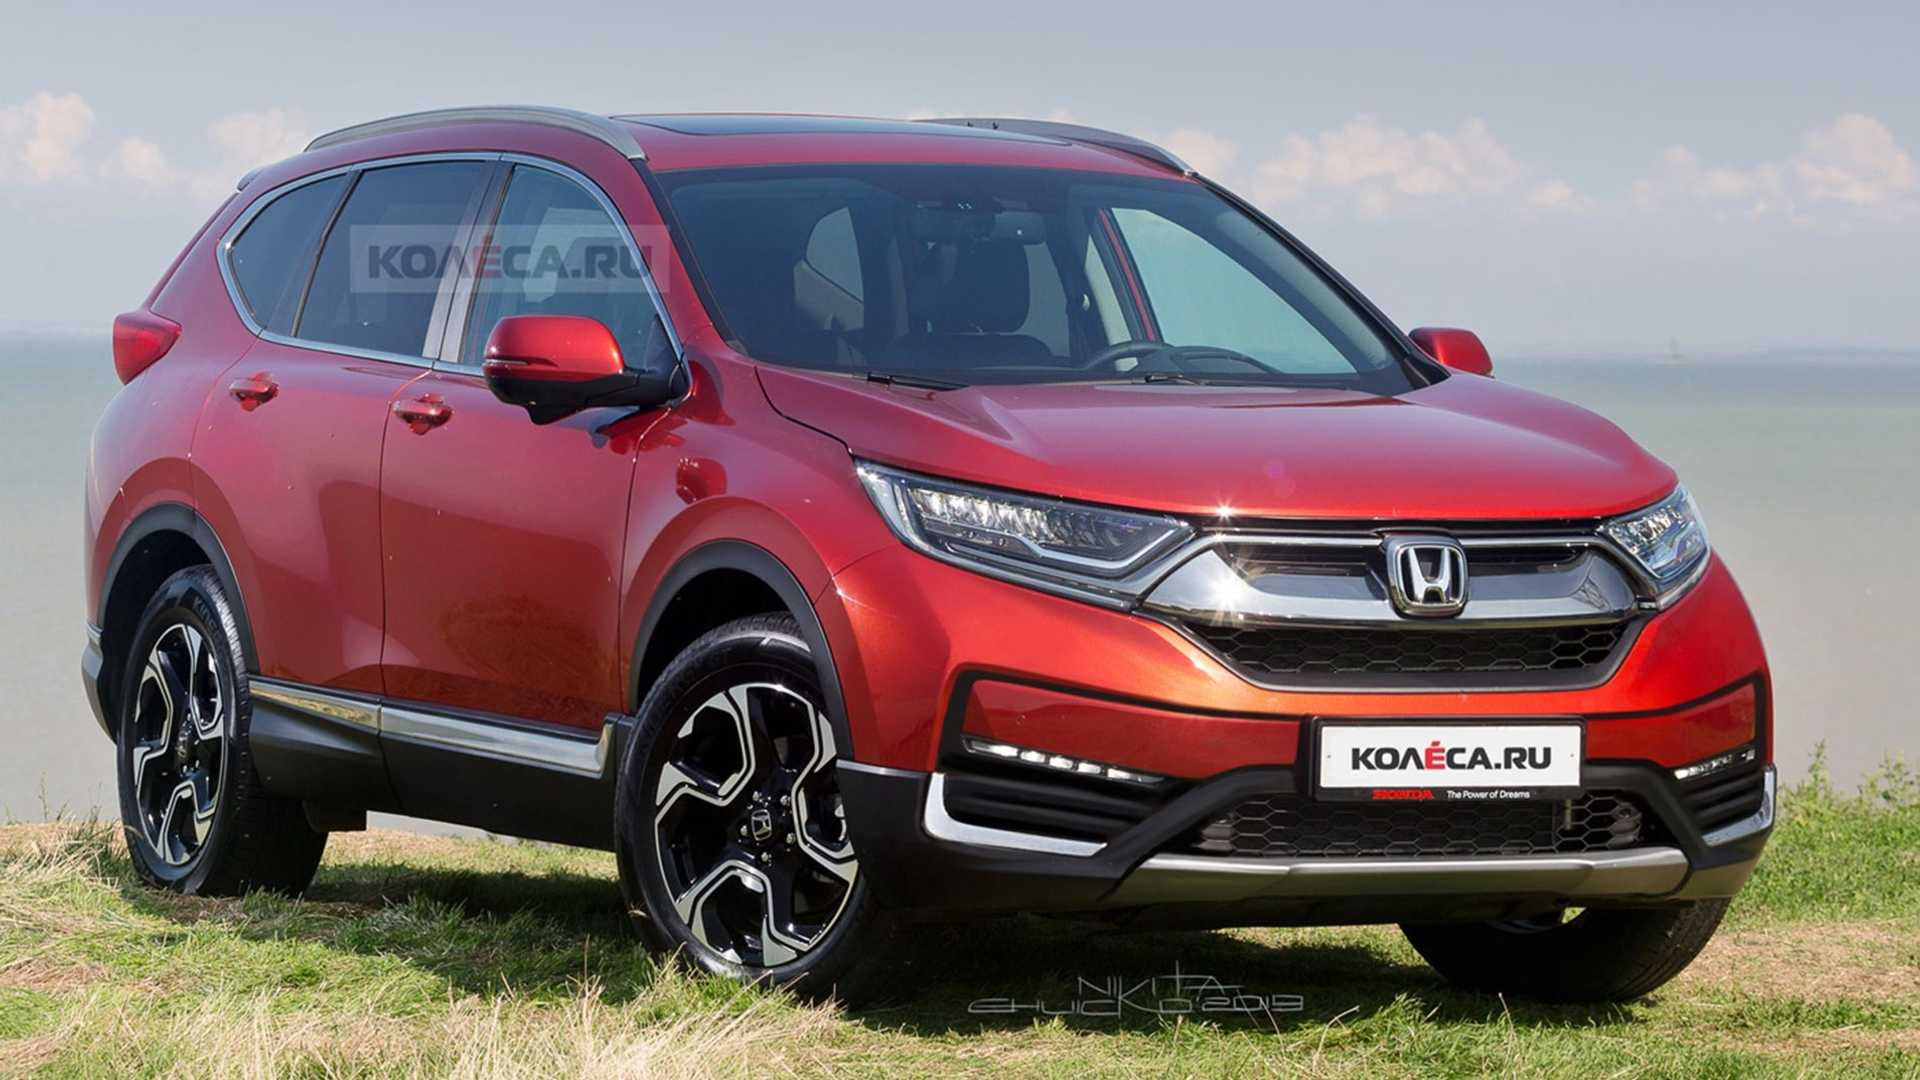 It's a motor scooter made for personal use. 2020 Honda Cr V Facelift Rendered Based On Spy Shots